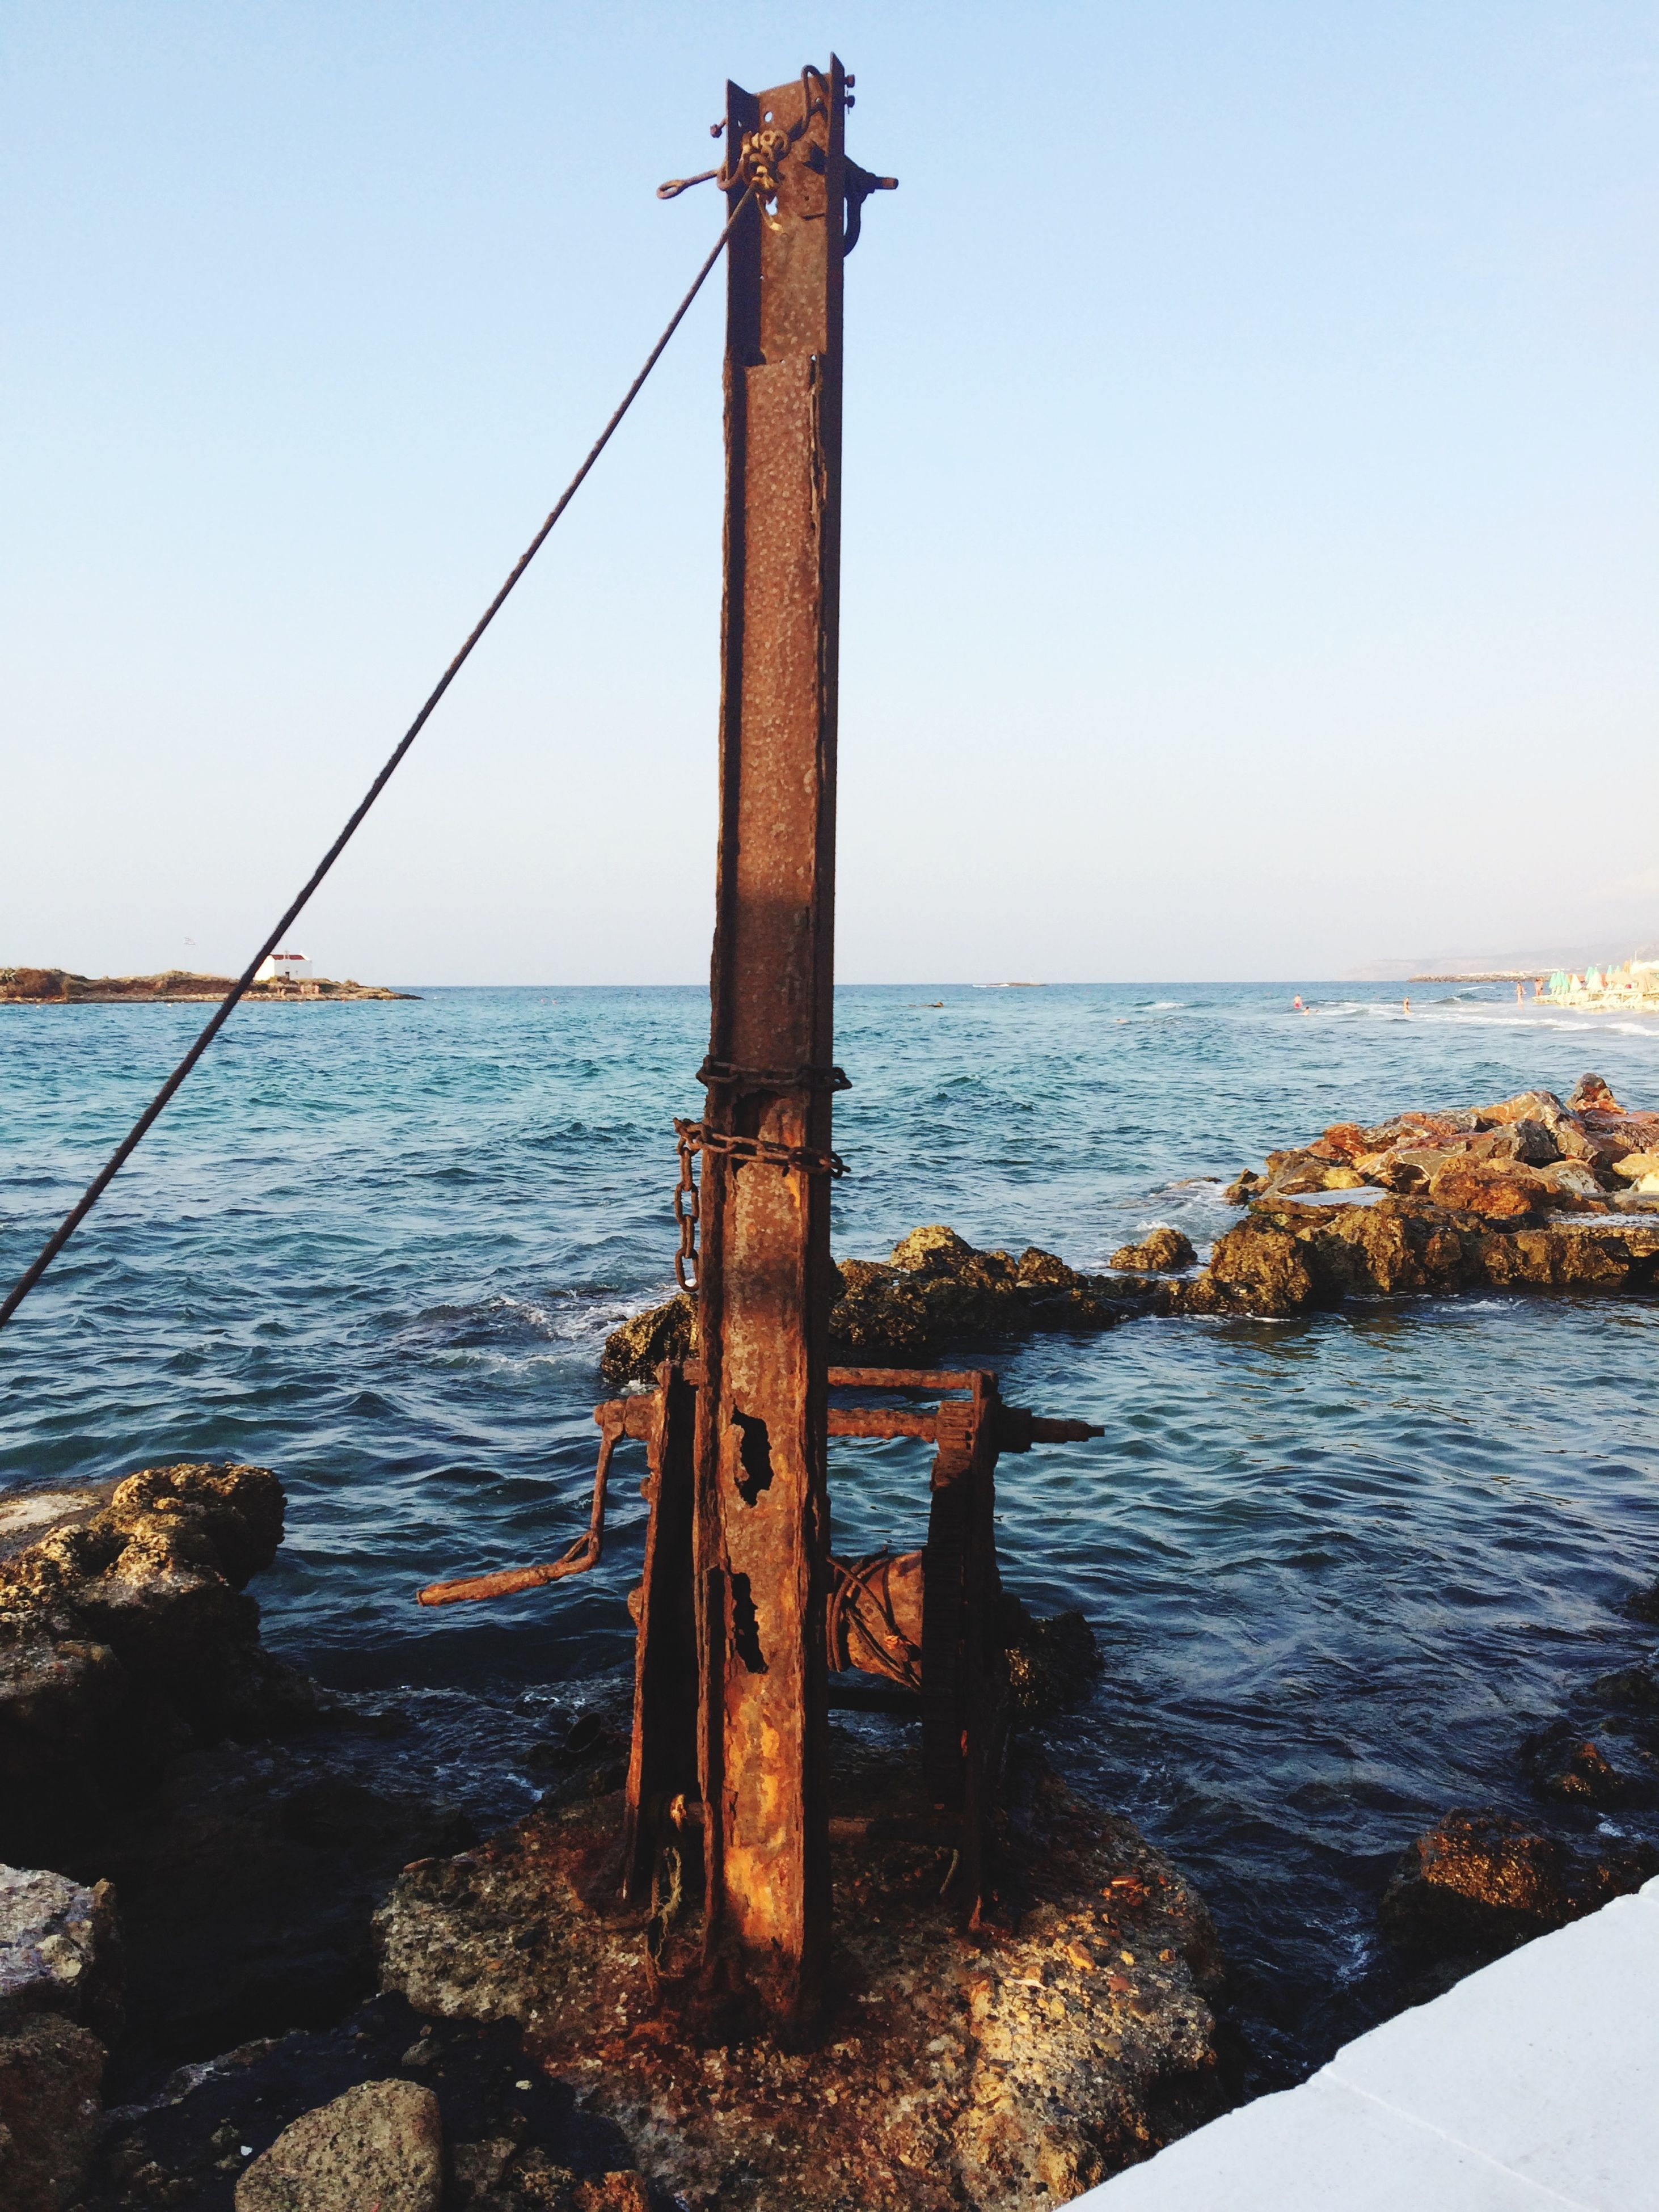 water, sea, horizon over water, clear sky, tranquility, tranquil scene, pier, scenics, nature, wood - material, copy space, beauty in nature, day, sky, idyllic, outdoors, rock - object, remote, no people, blue